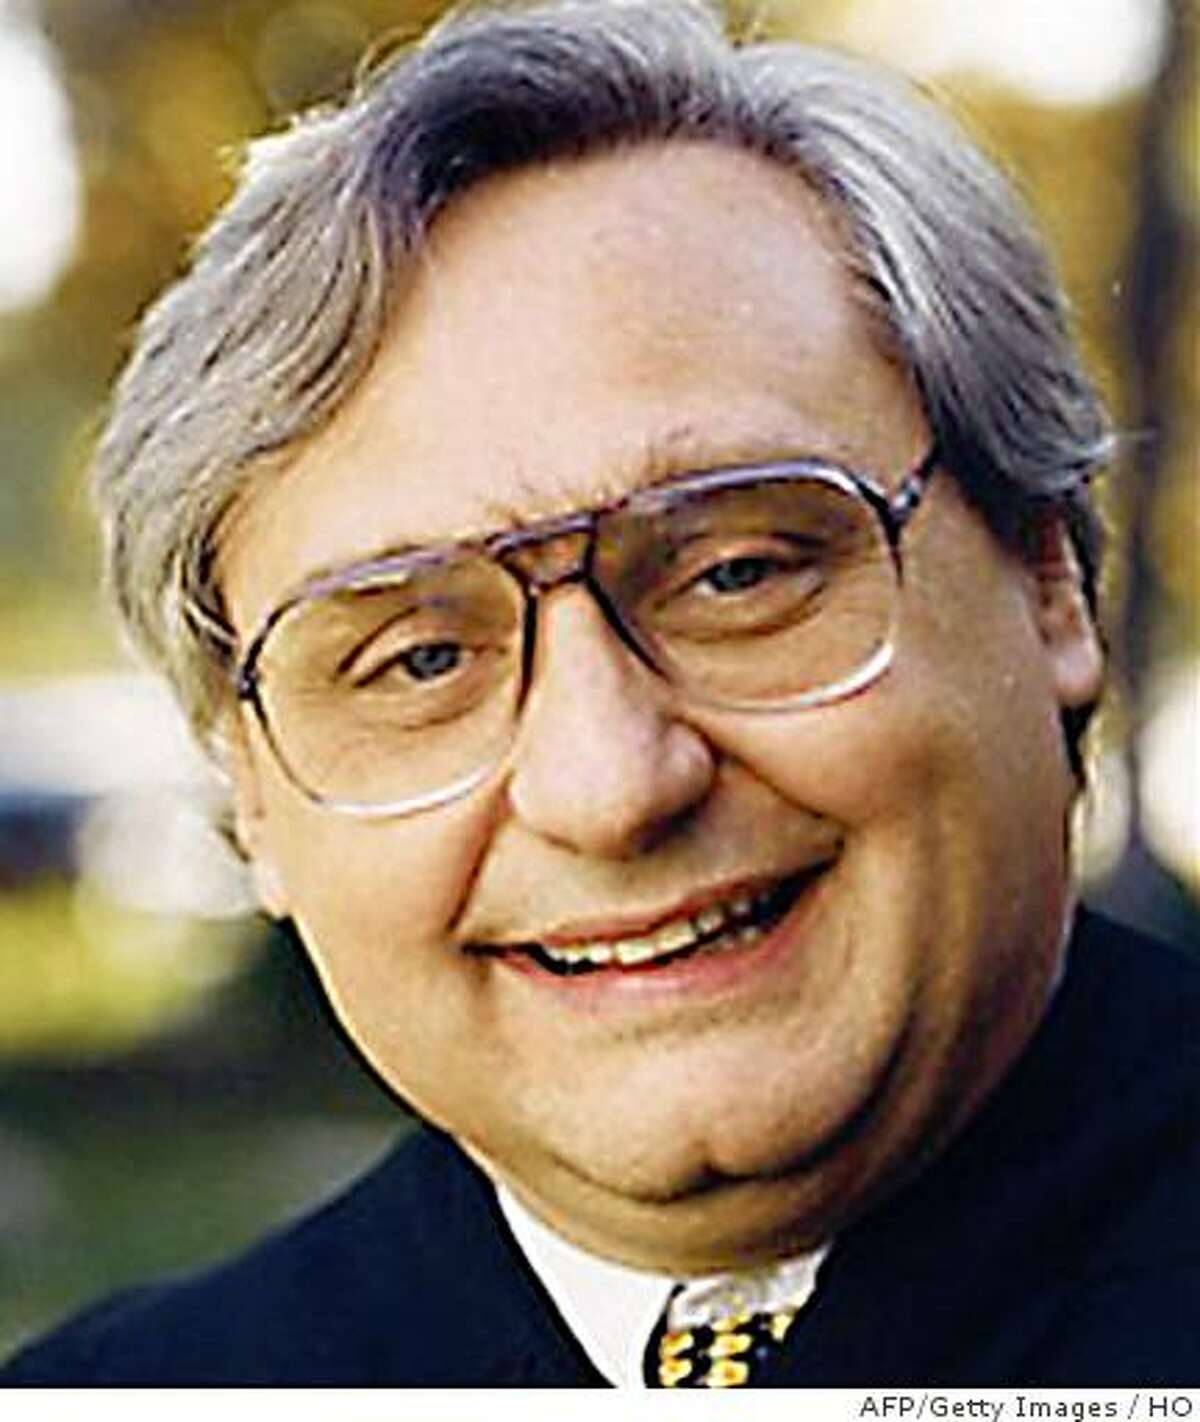 This undated handout image recieved June 12, 2008 shows Chief Judge Alex Kozinski United States Circuit Judge for the Ninth Circuit. A long-awaited obscenity trial opened June 11 and was promptly put on hold, after revelations that the top federal judge hearing the case had posted sexually explicit material on the Internet. Judge Alex Kozinski agreed to the prosecution's request for a 48-hour delay so the Justice Department could look into possible issues of prejudice in the case, in view of the judge's actions. EDITORS NOTE. BEST QUALITY AFP PHOTO/HO/ = = RESTRICTED TO EDITORIAL USE = = GETTY OUT = = (Photo credit should read HO/AFP/Getty Images)